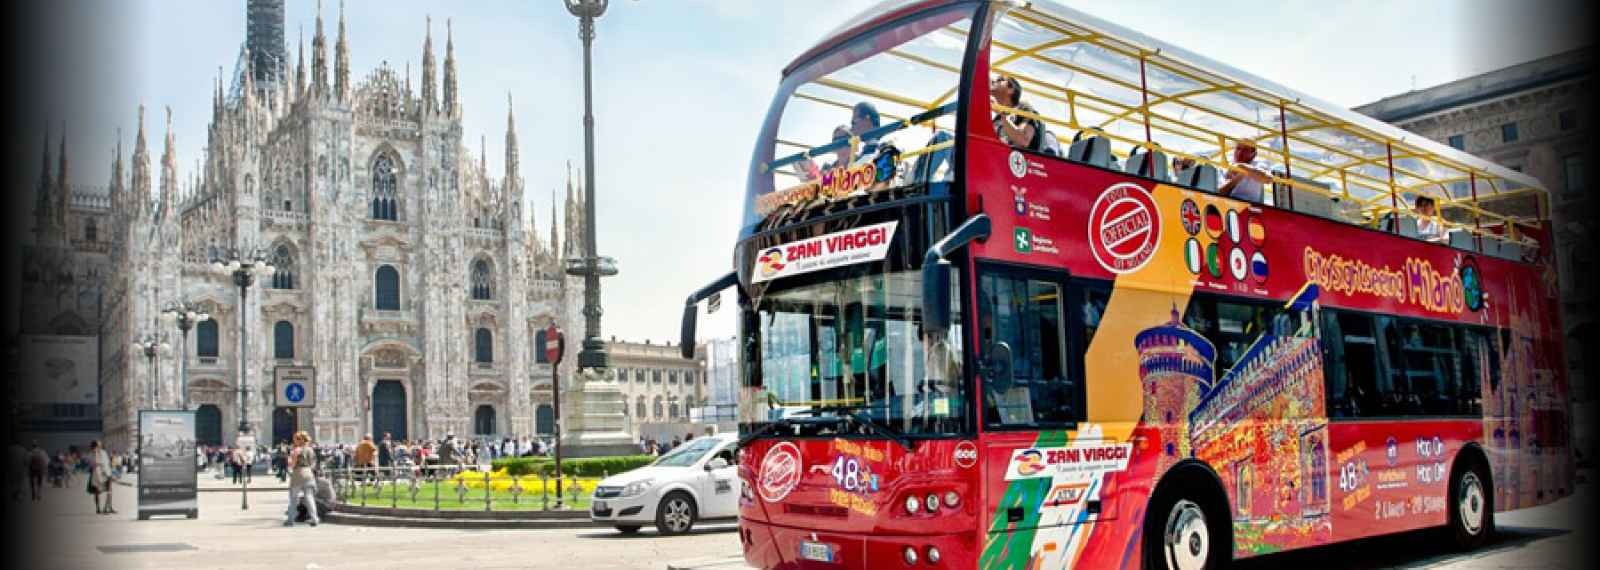 milan city sightseeing